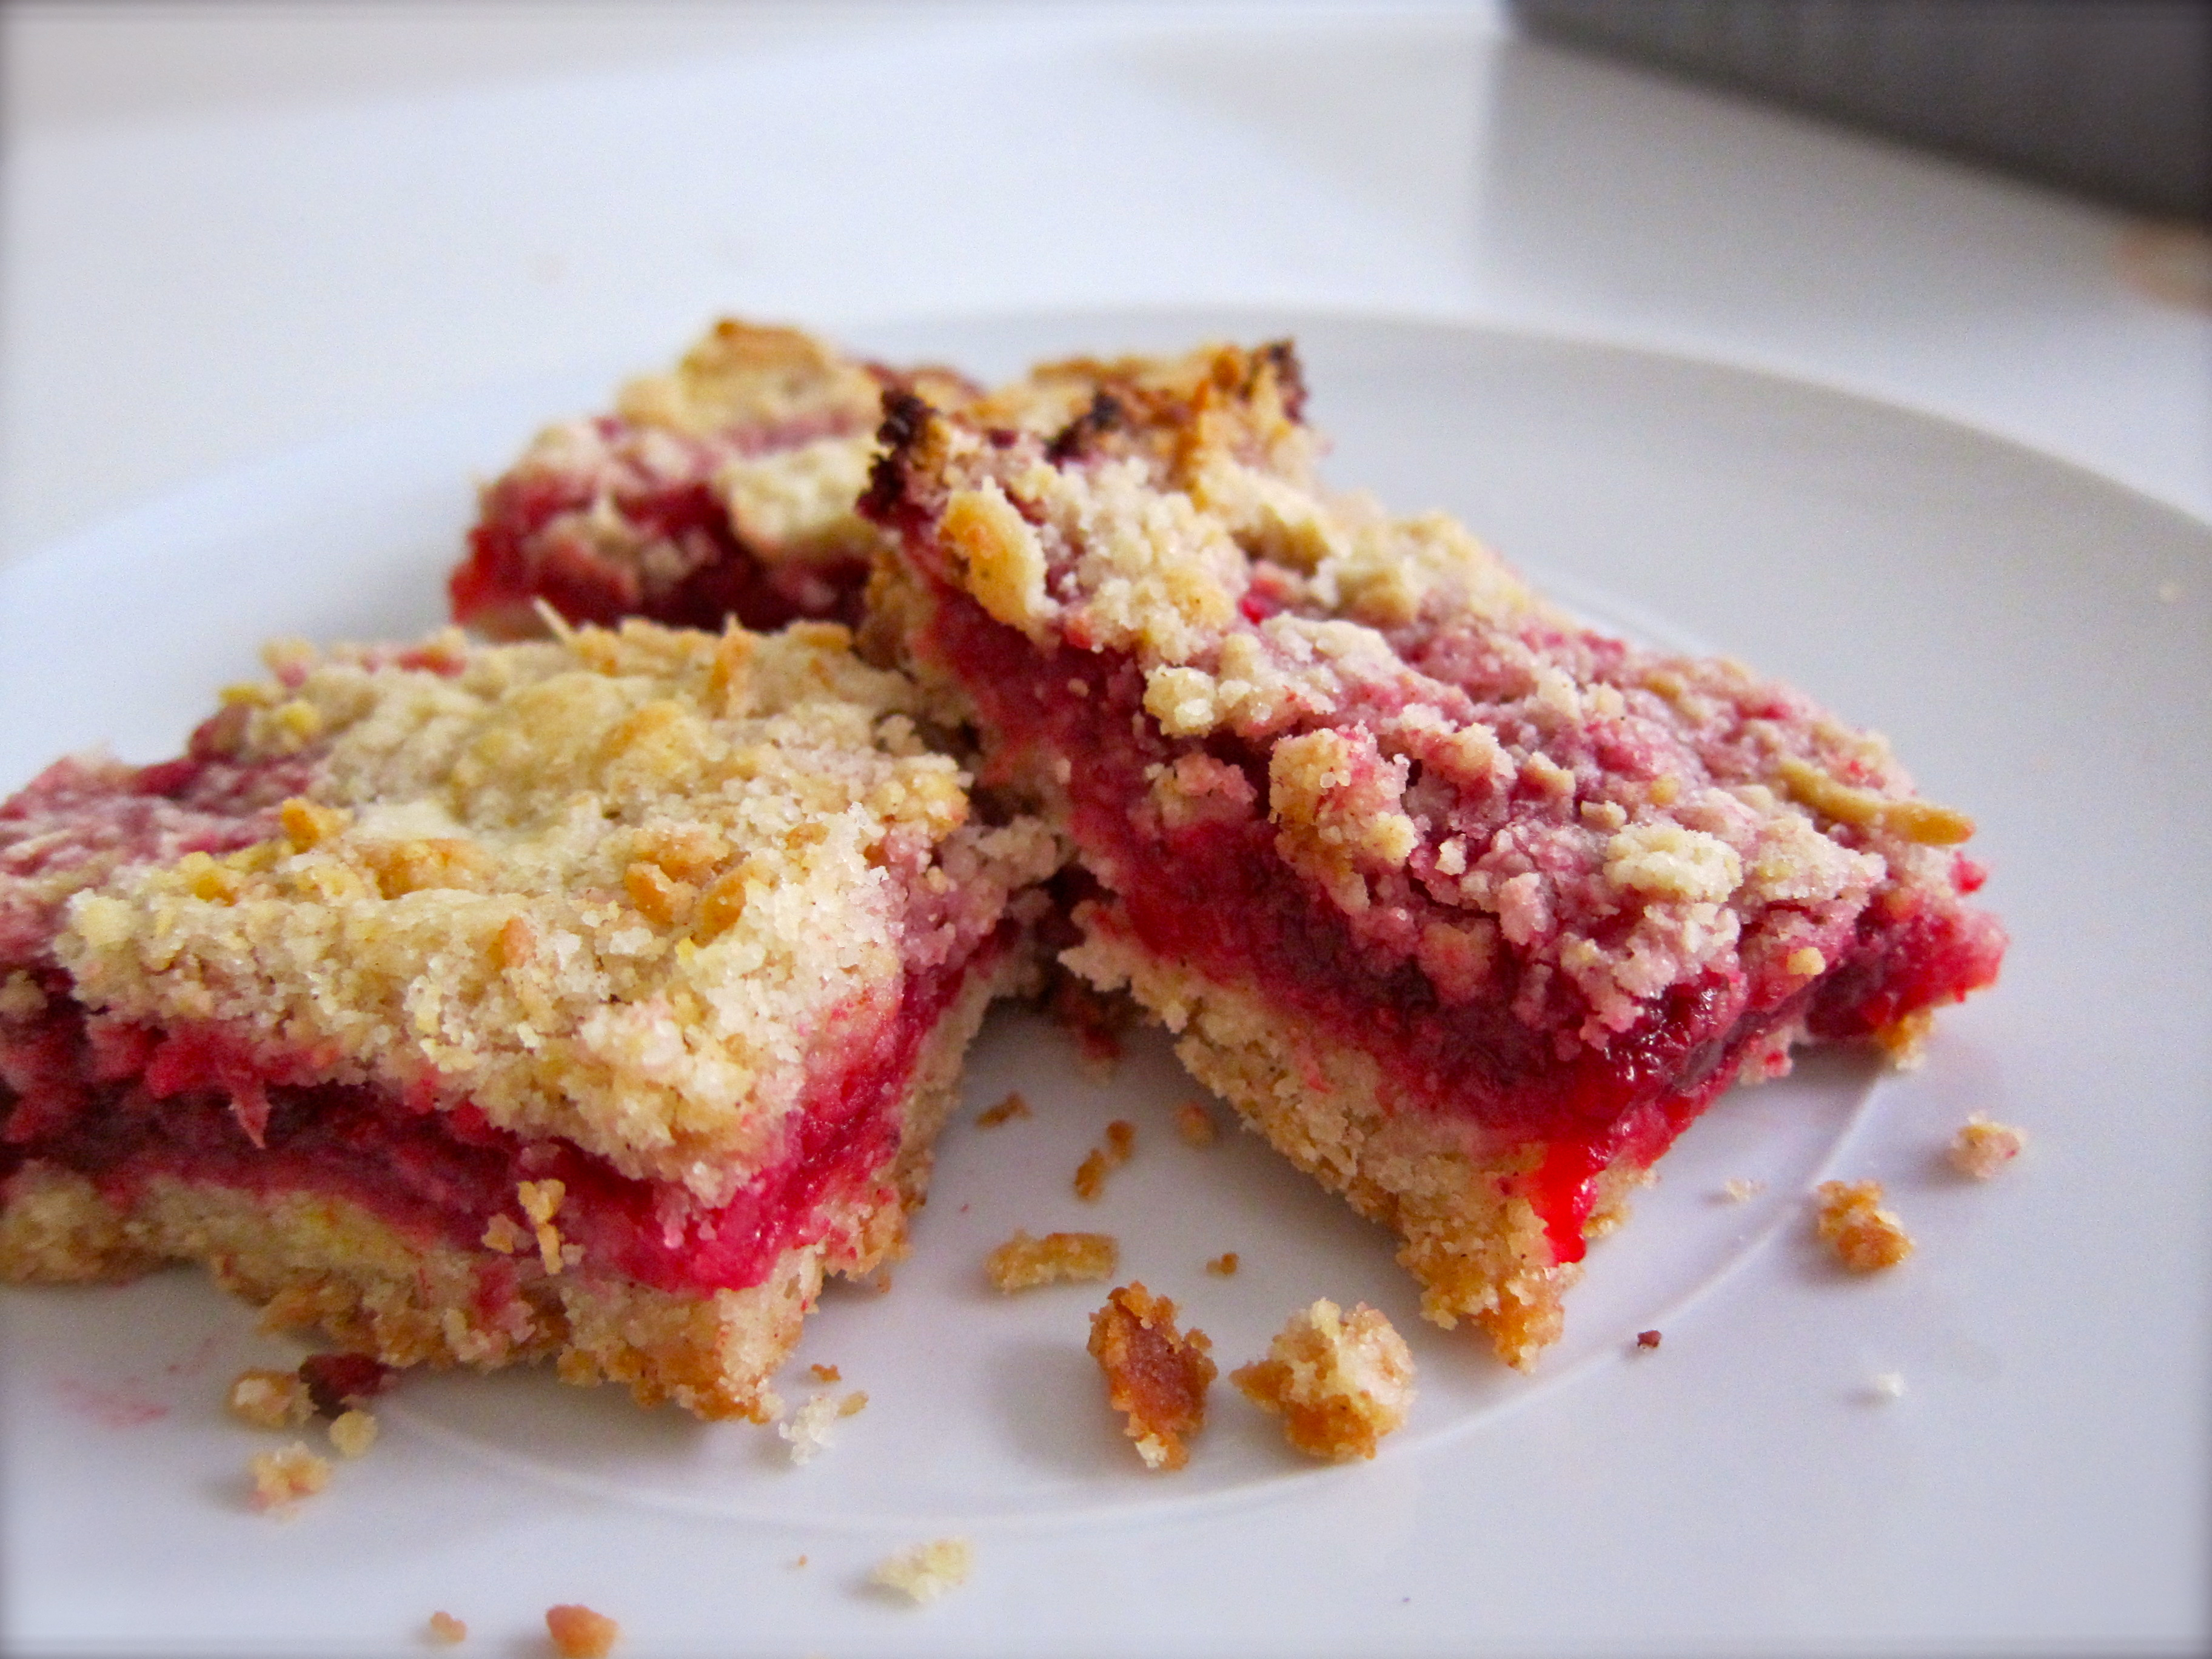 Smitten Kitchen's Cranberry Crumb Bars | Figsinmybelly